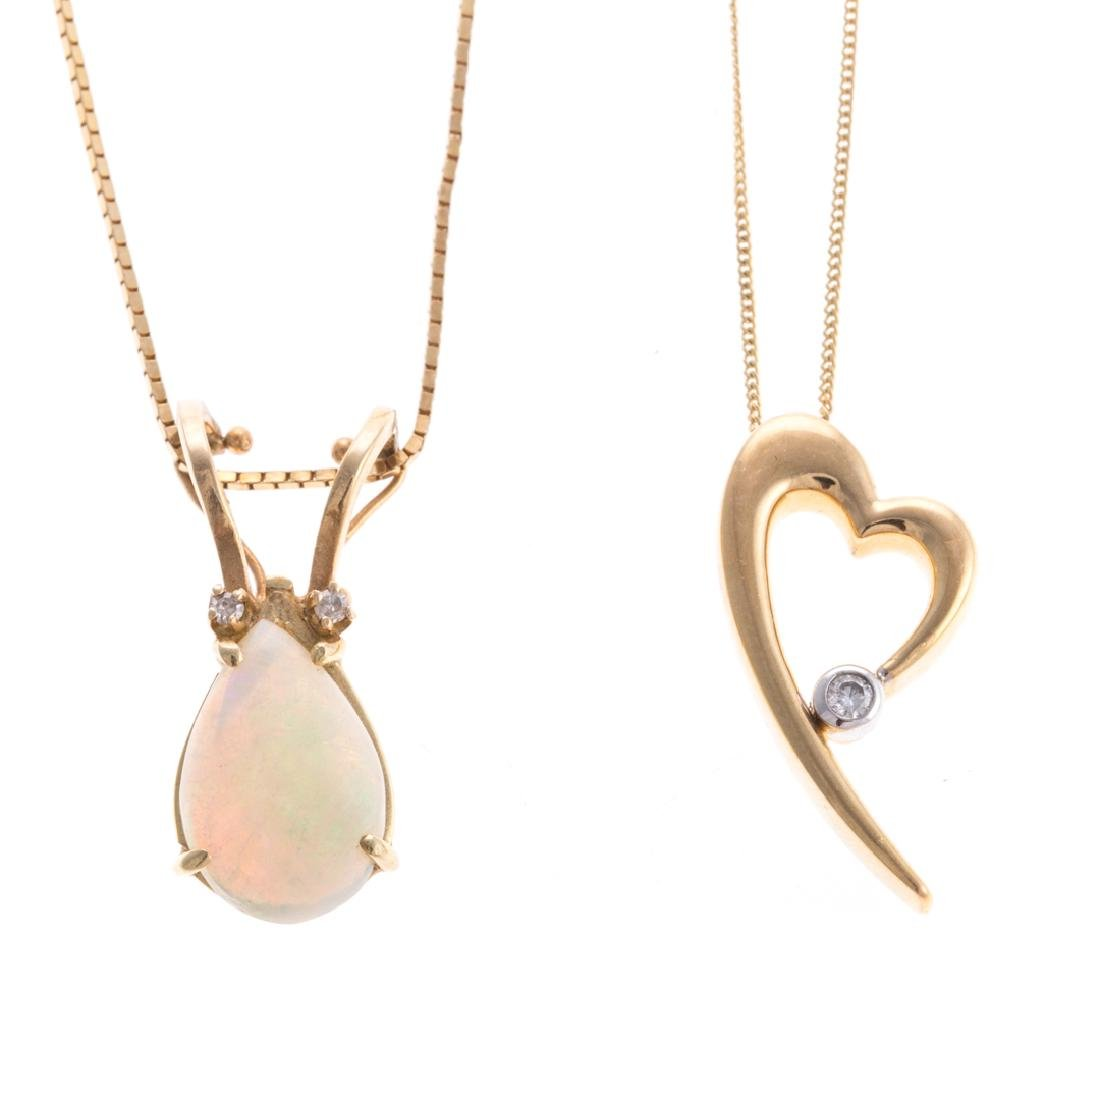 Two Lady's Necklaces with Pendants in 14K